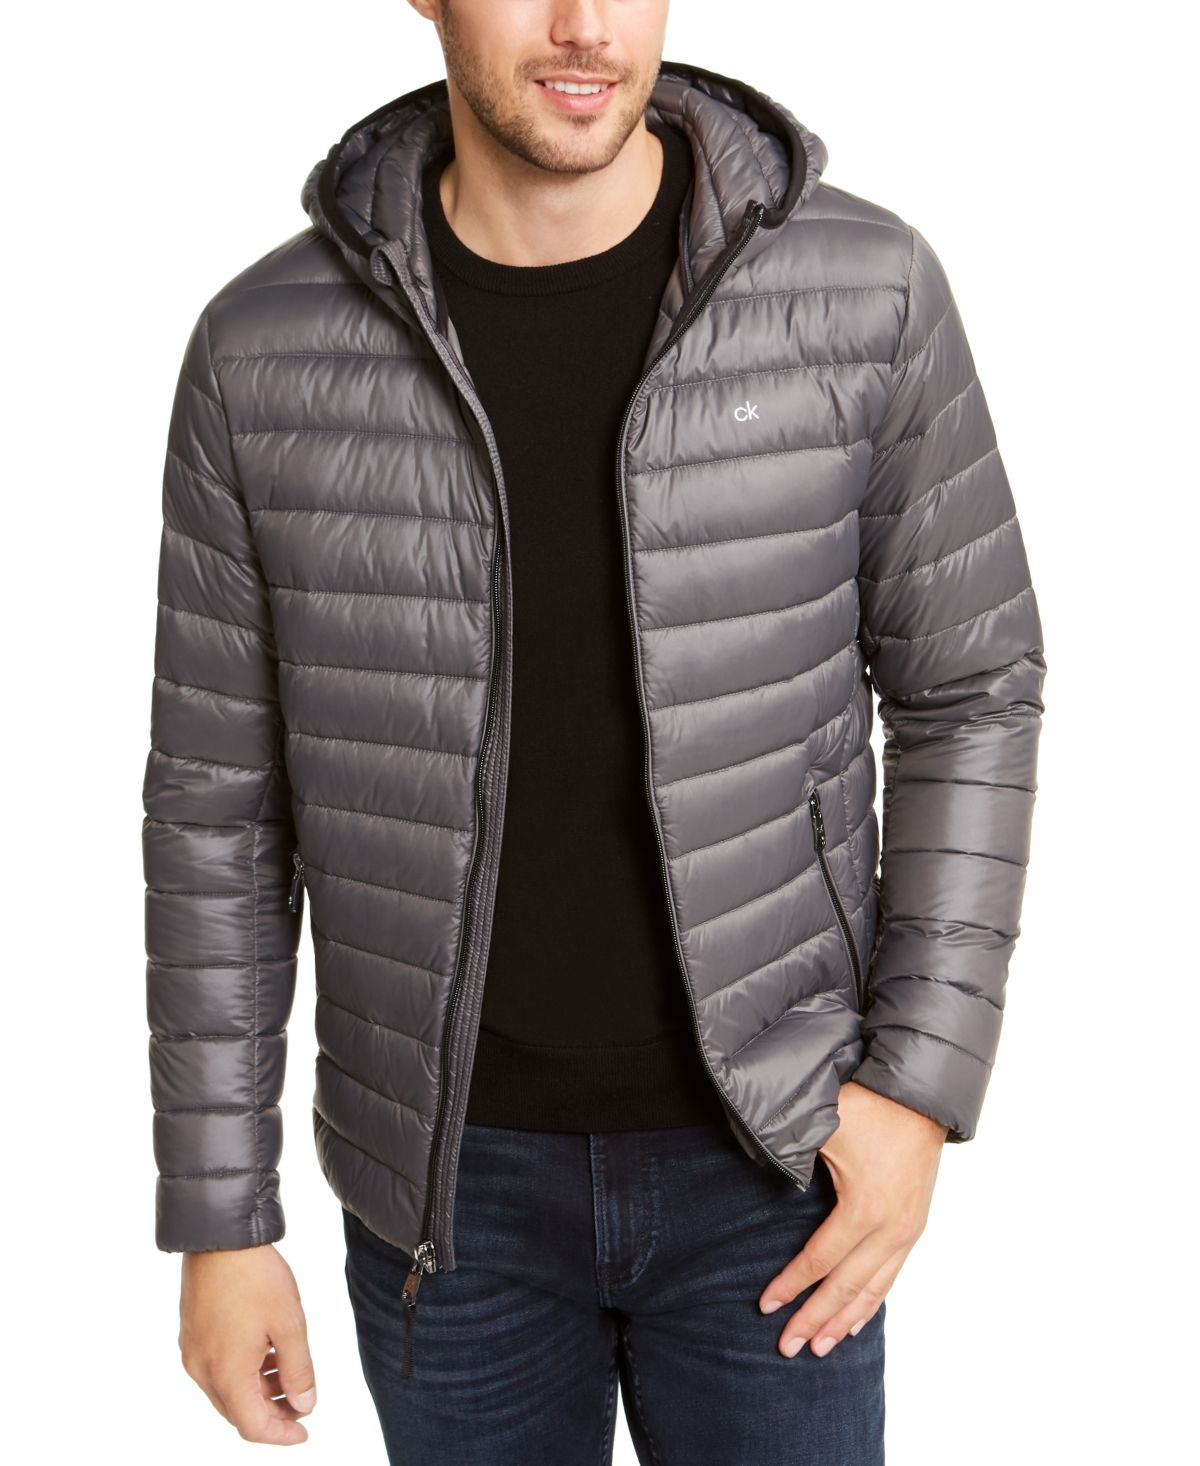 Calvin Klein Men S Packable Down Hooded Puffer Jacket Created For Macy S Reviews Coats Jackets Men Macy S In 2021 Puffer Jacket Women Calvin Klein Men Mens Jackets [ 1466 x 1200 Pixel ]